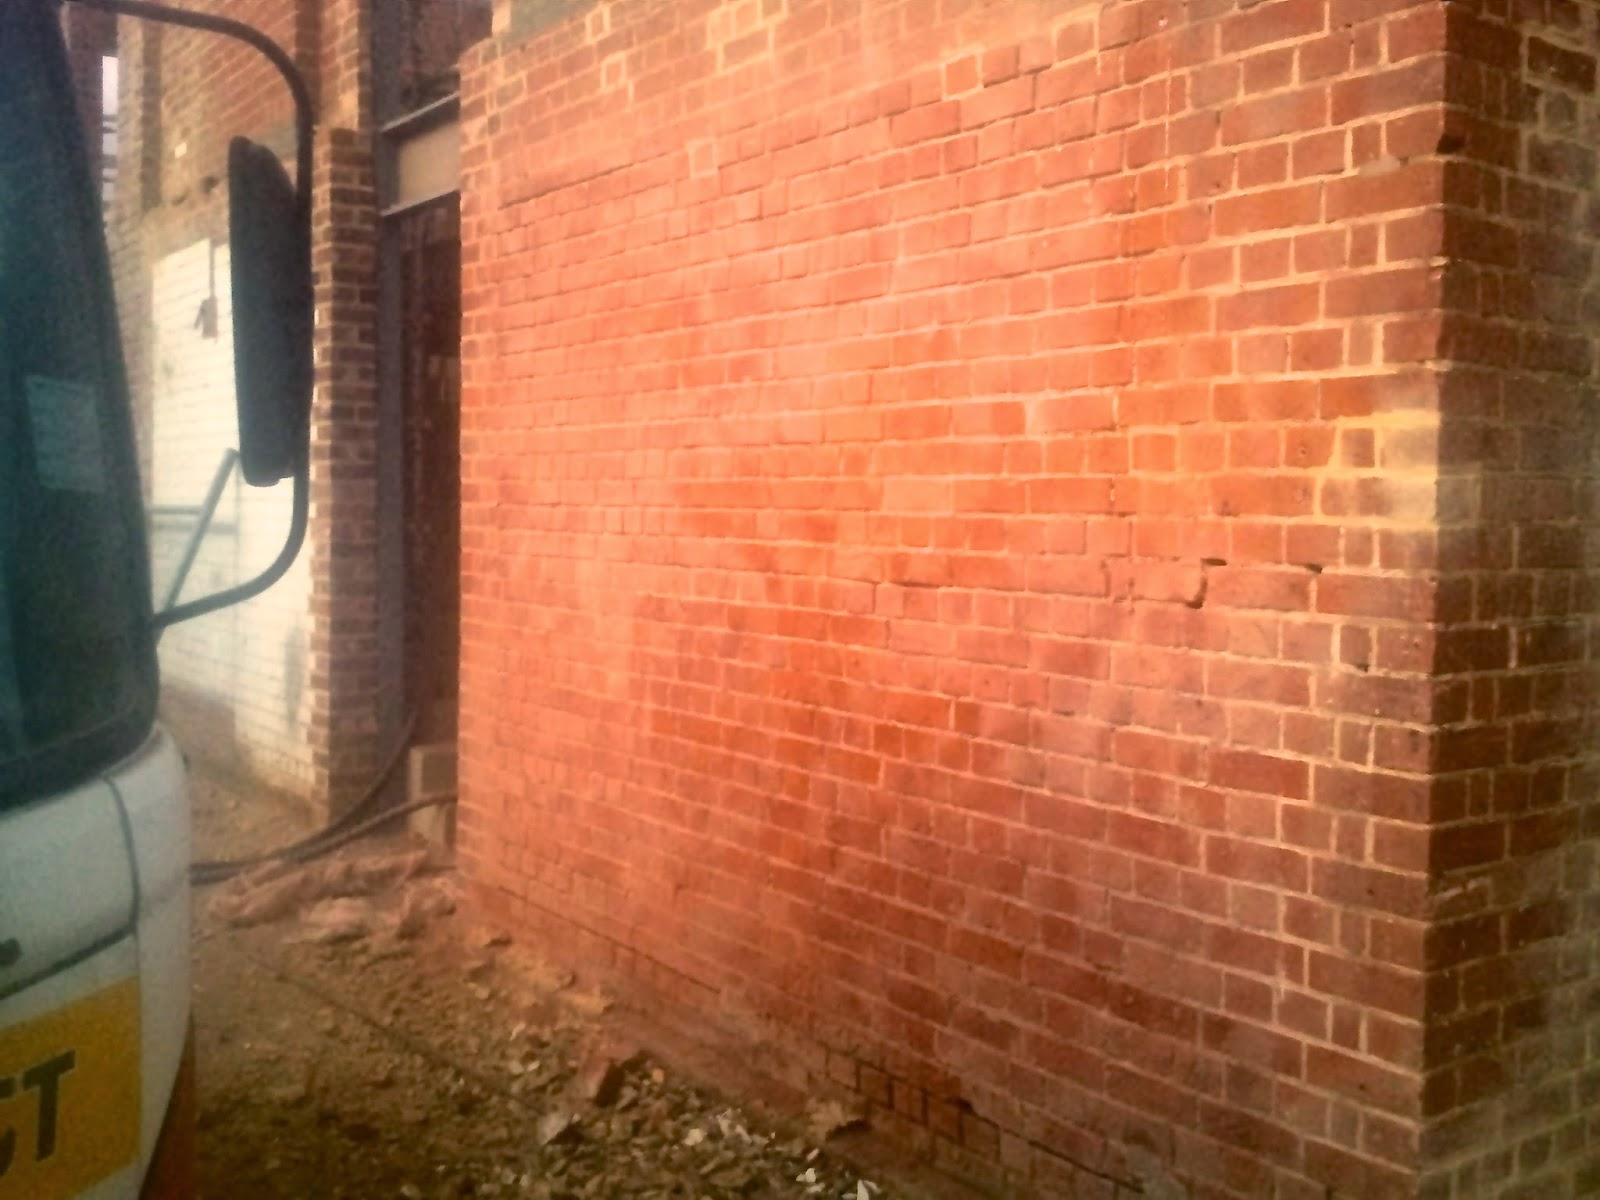 Exterior walls can benefit from abrasive blasting to restore them